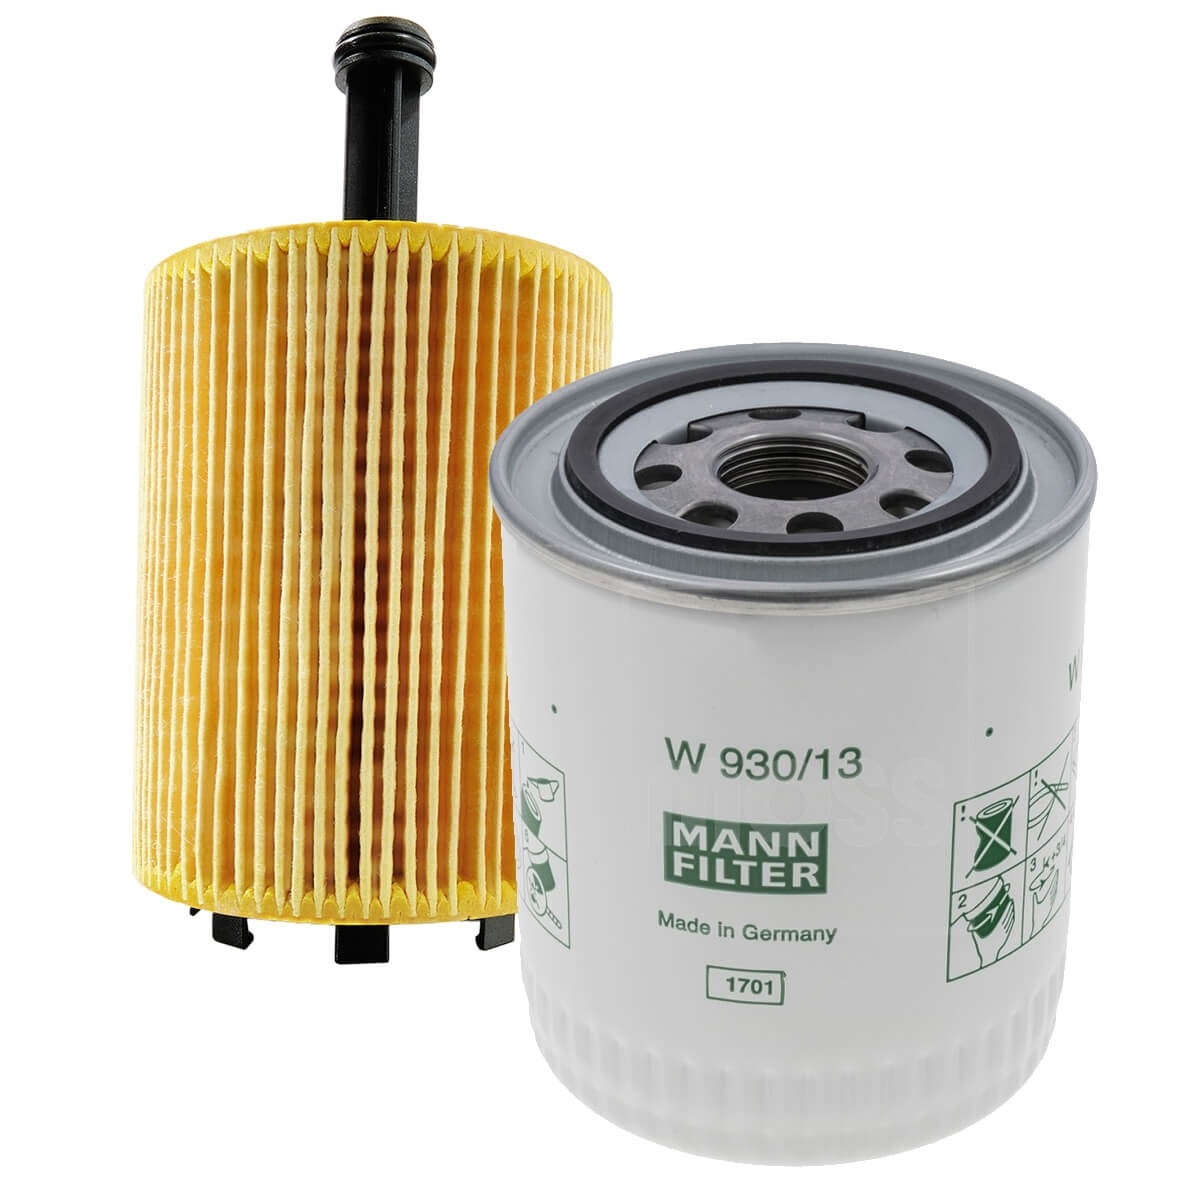 DODGE AVENGER Oil Filter